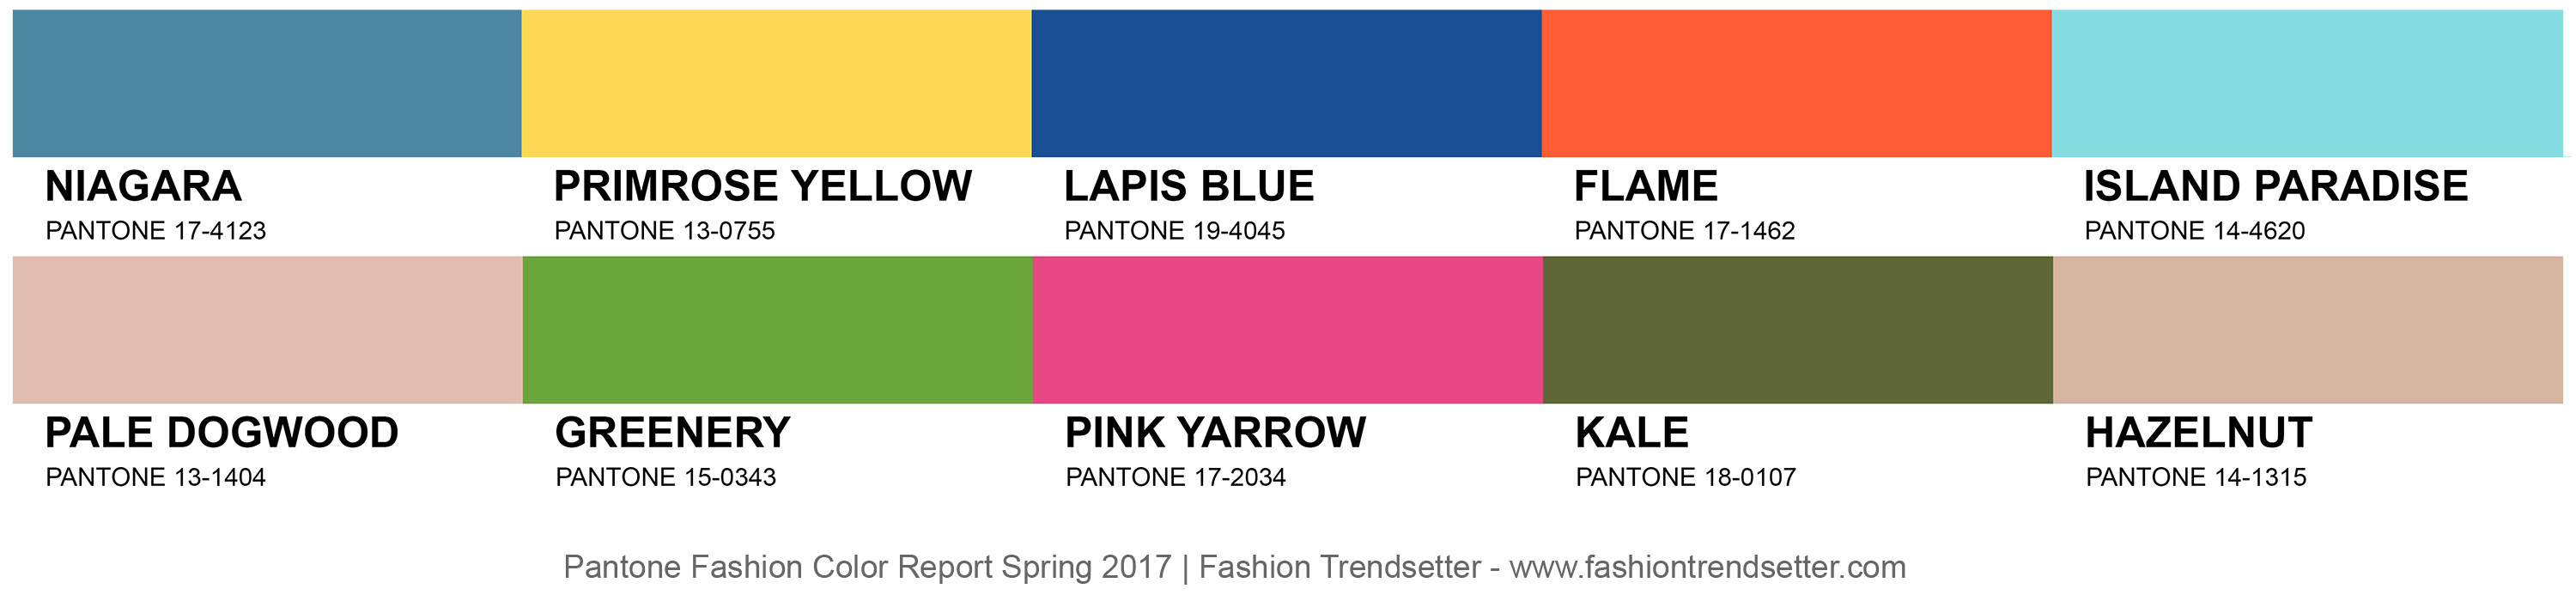 Pantone Fashion Color Report Spring 2017 Card By Trendsetter